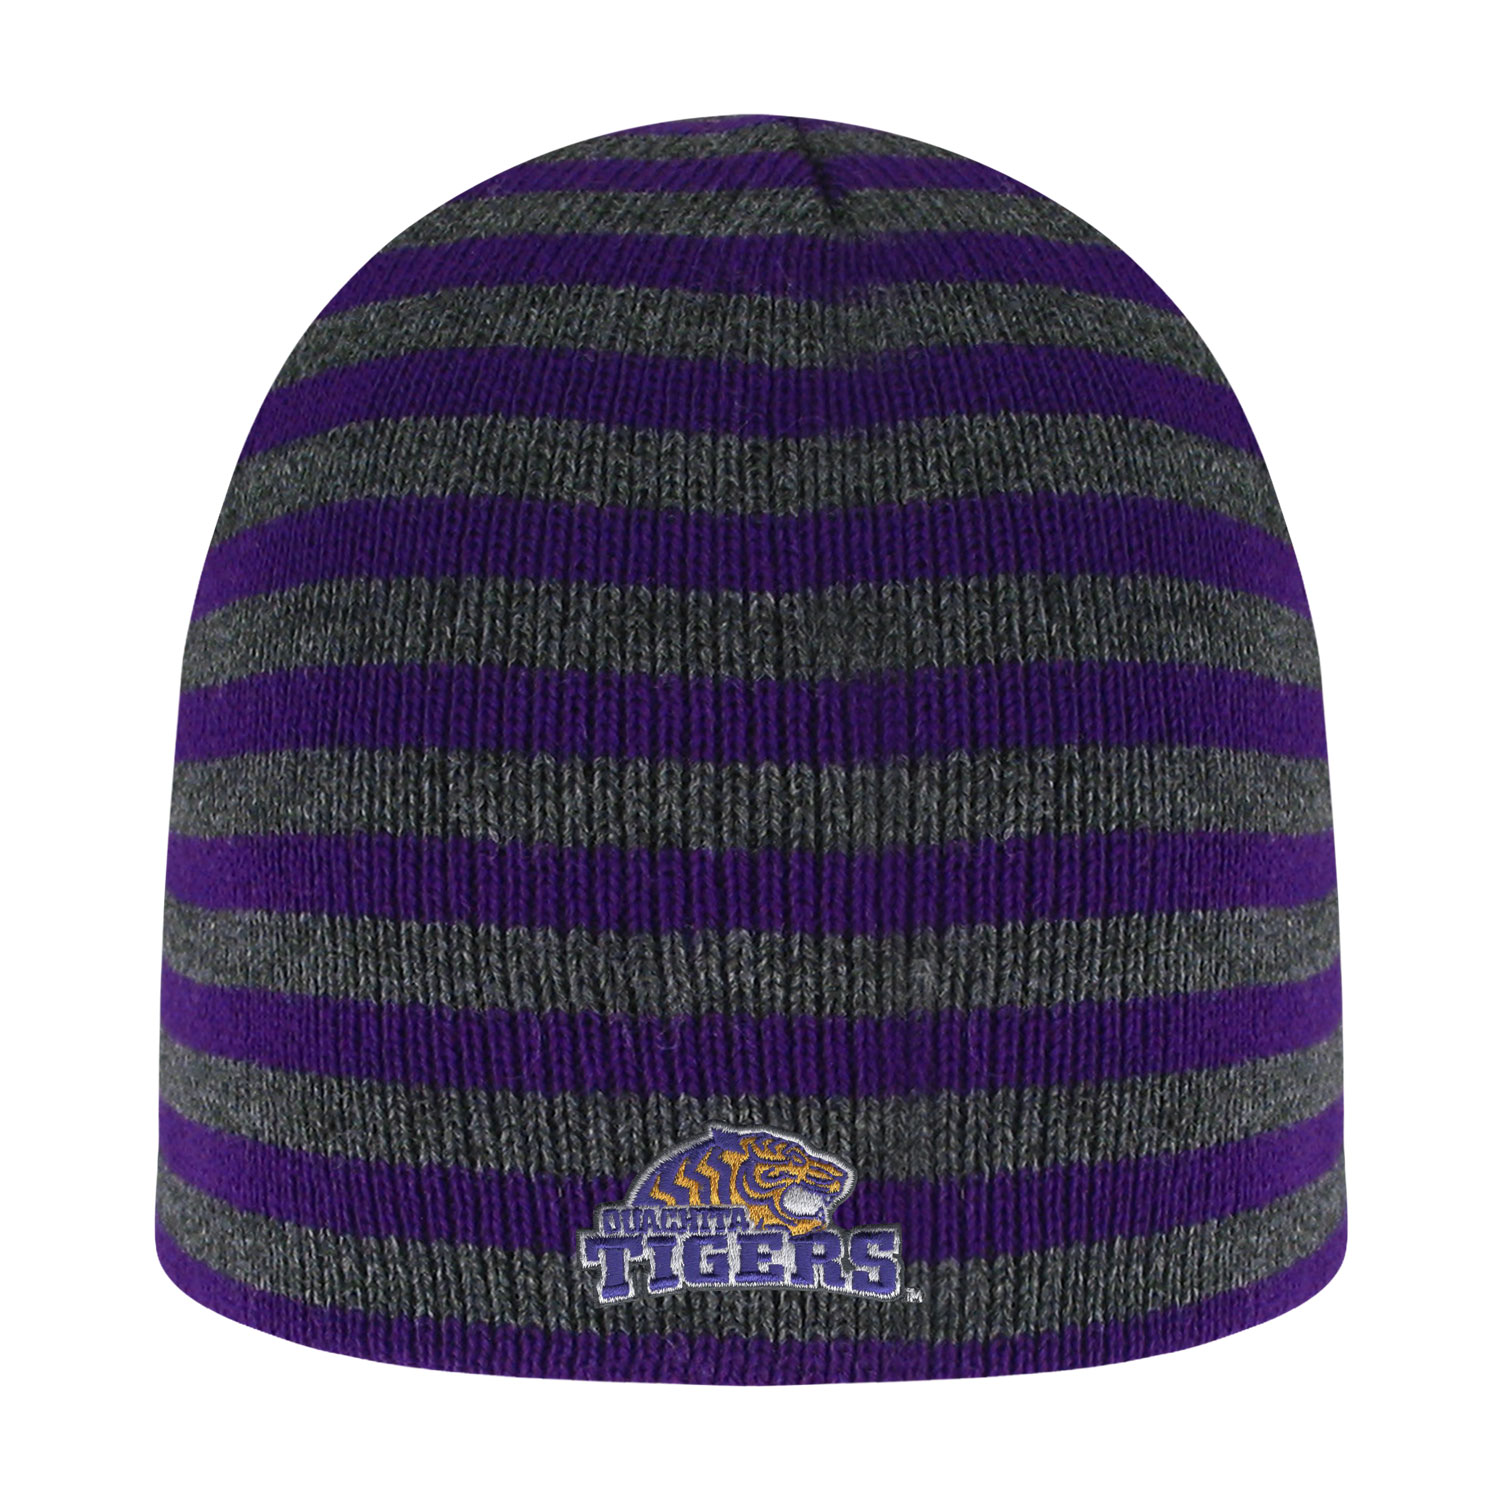 OUACHITA TIGERS BLIZZARD MICRO-STRIPED KNIT BEANIE